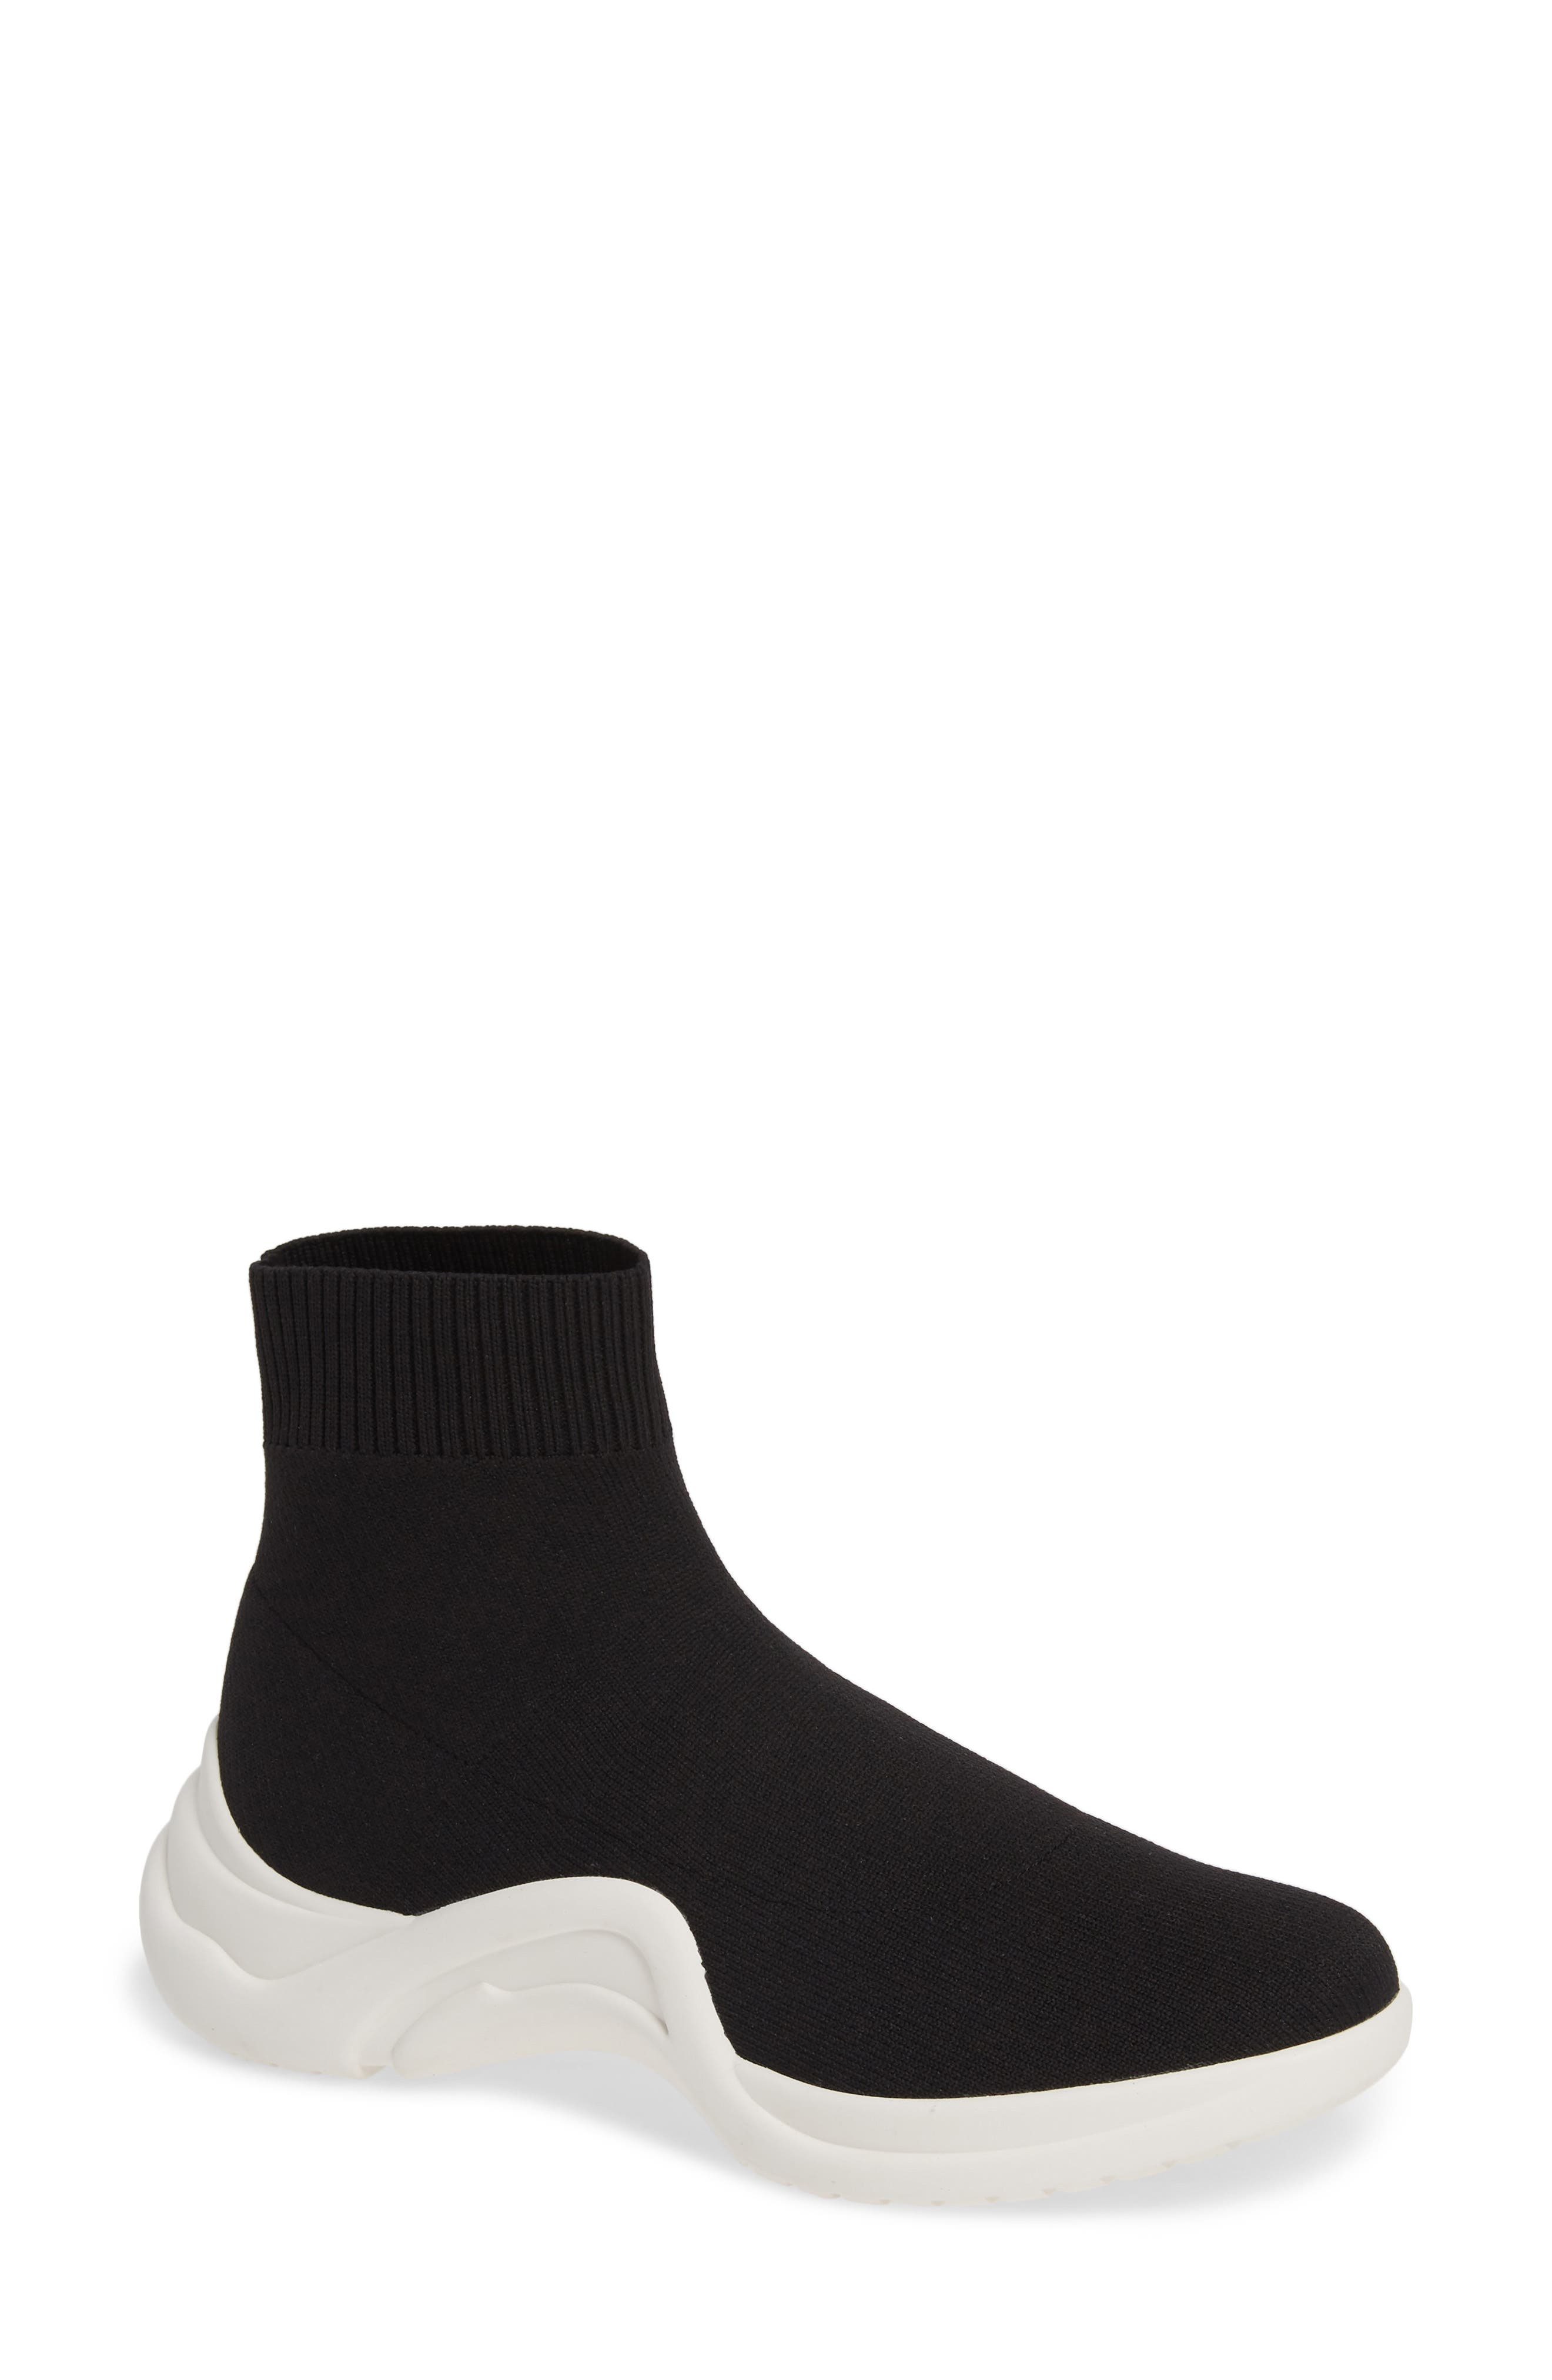 LINEA PAOLO Gale Sneaker, Main, color, BLACK KNIT FABRIC